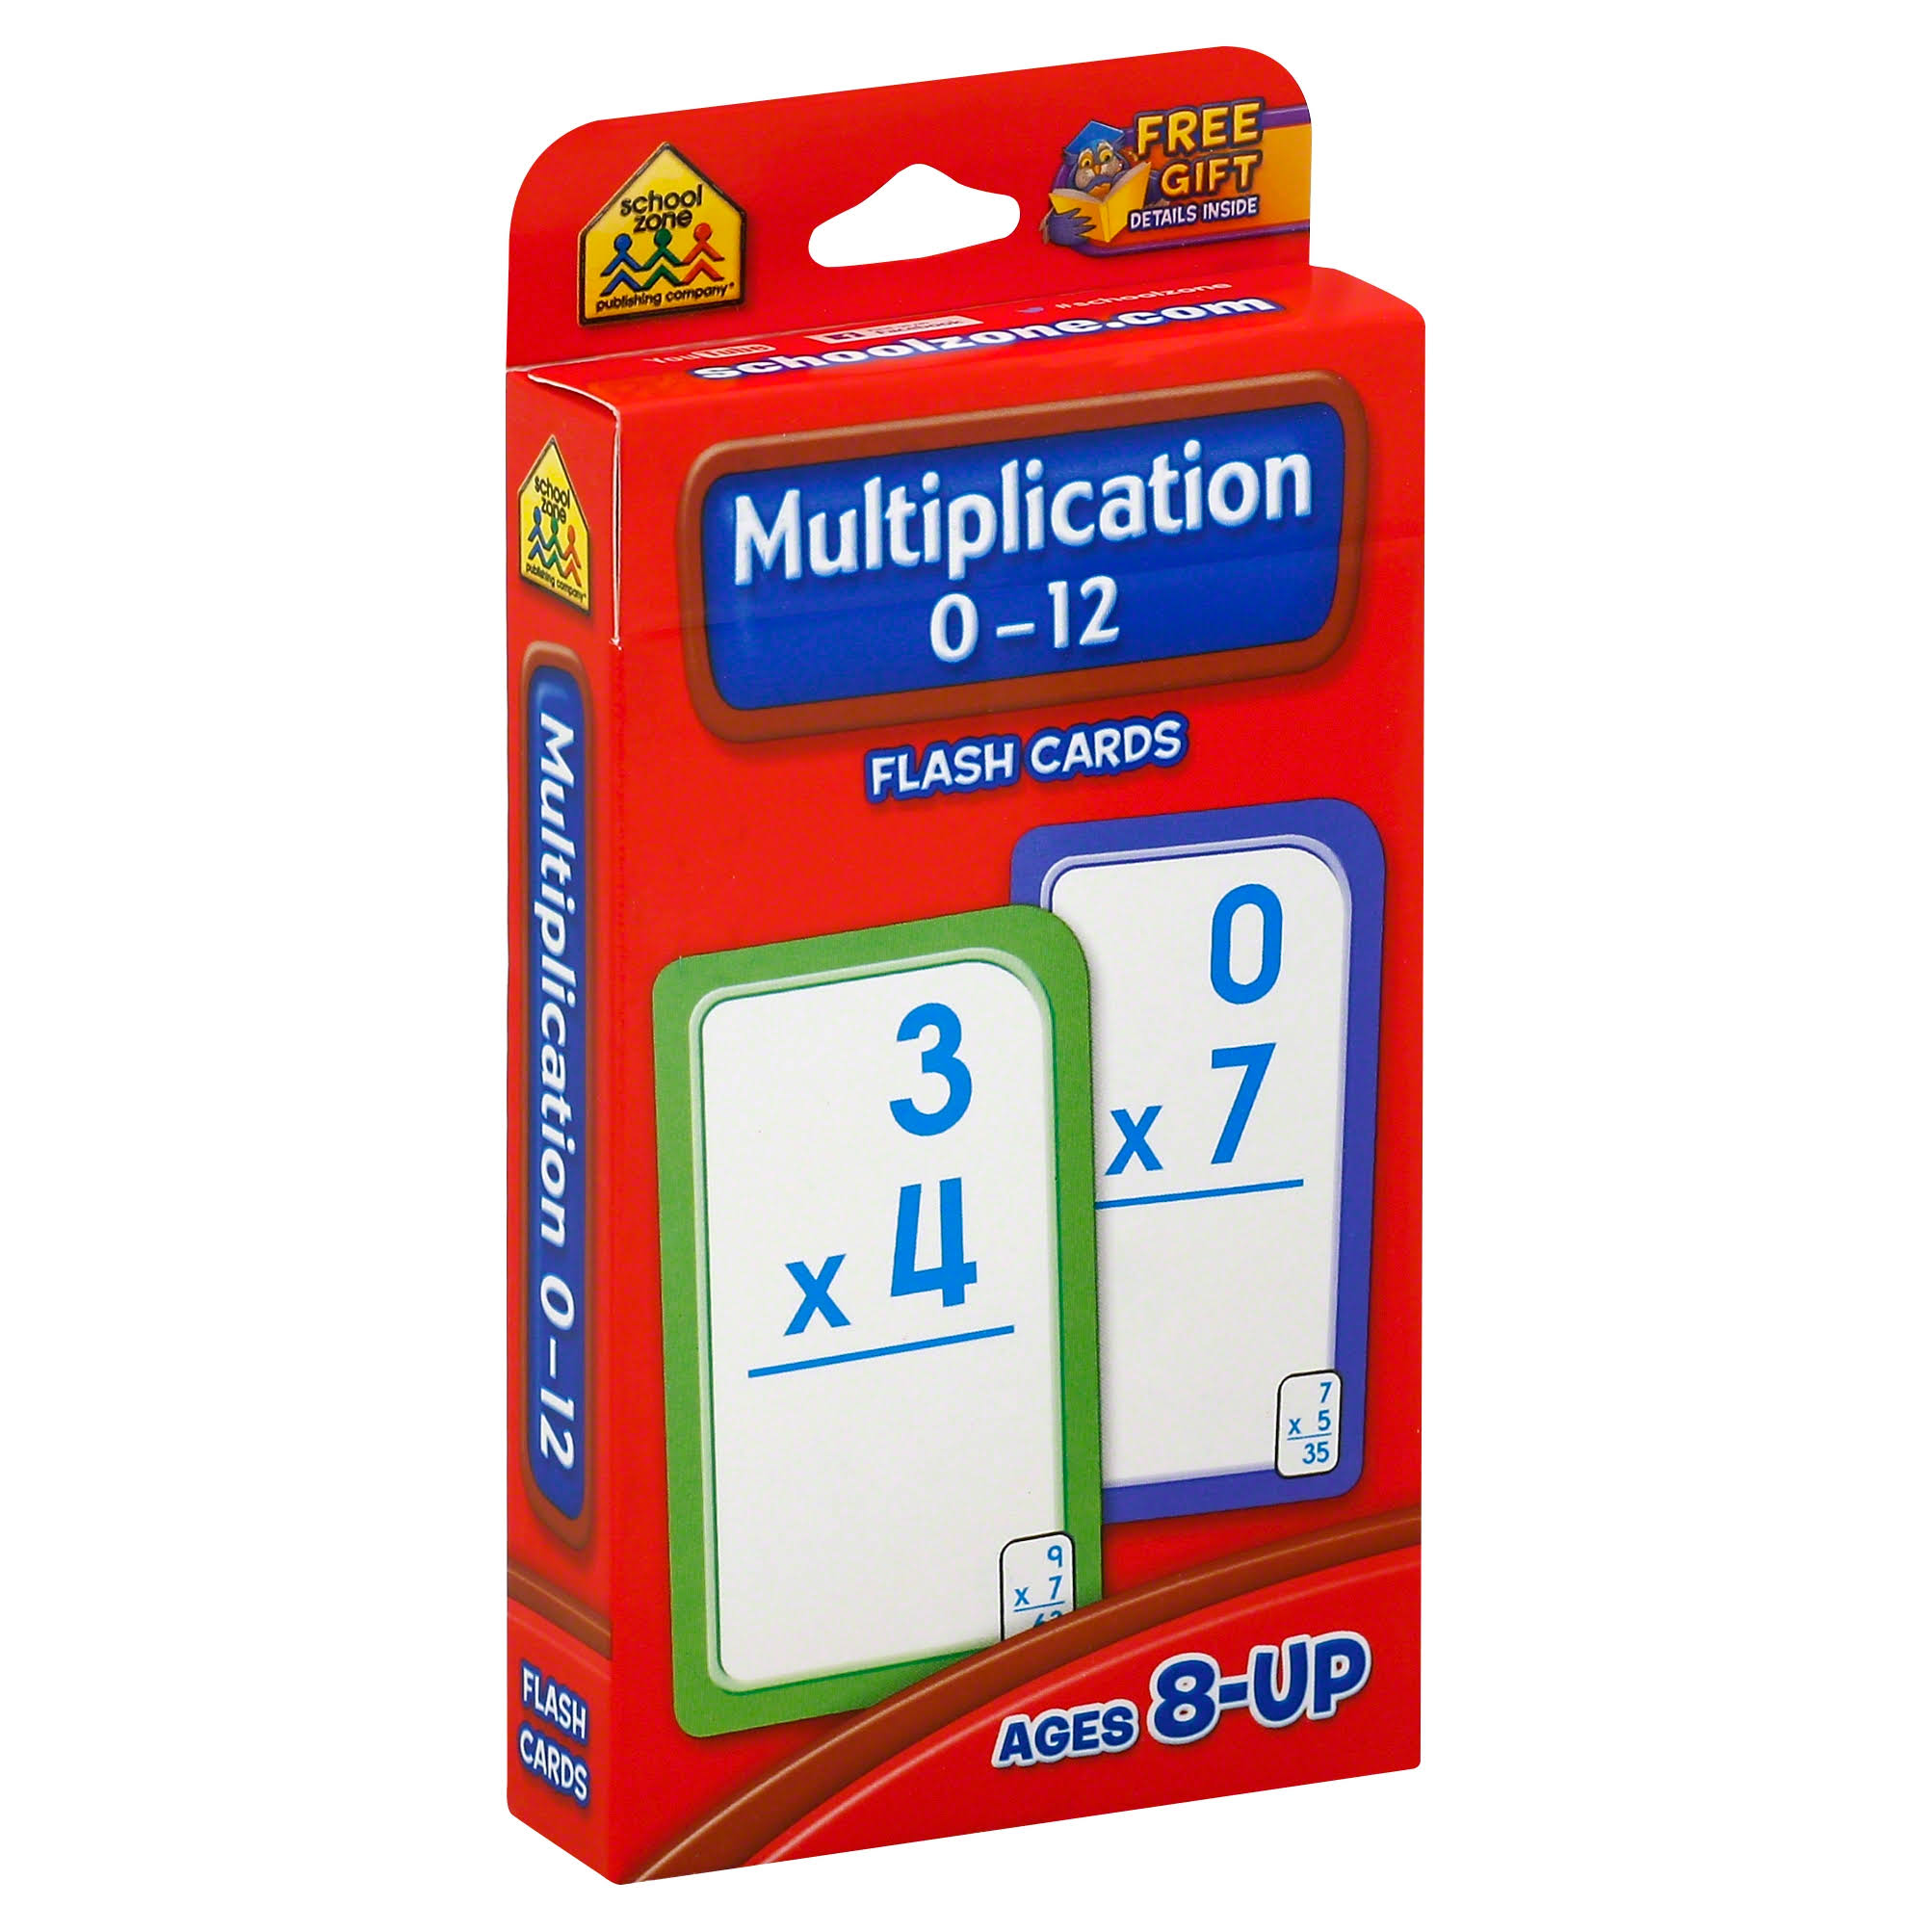 Multiplication 0-12 Flash Cards - 3 Set